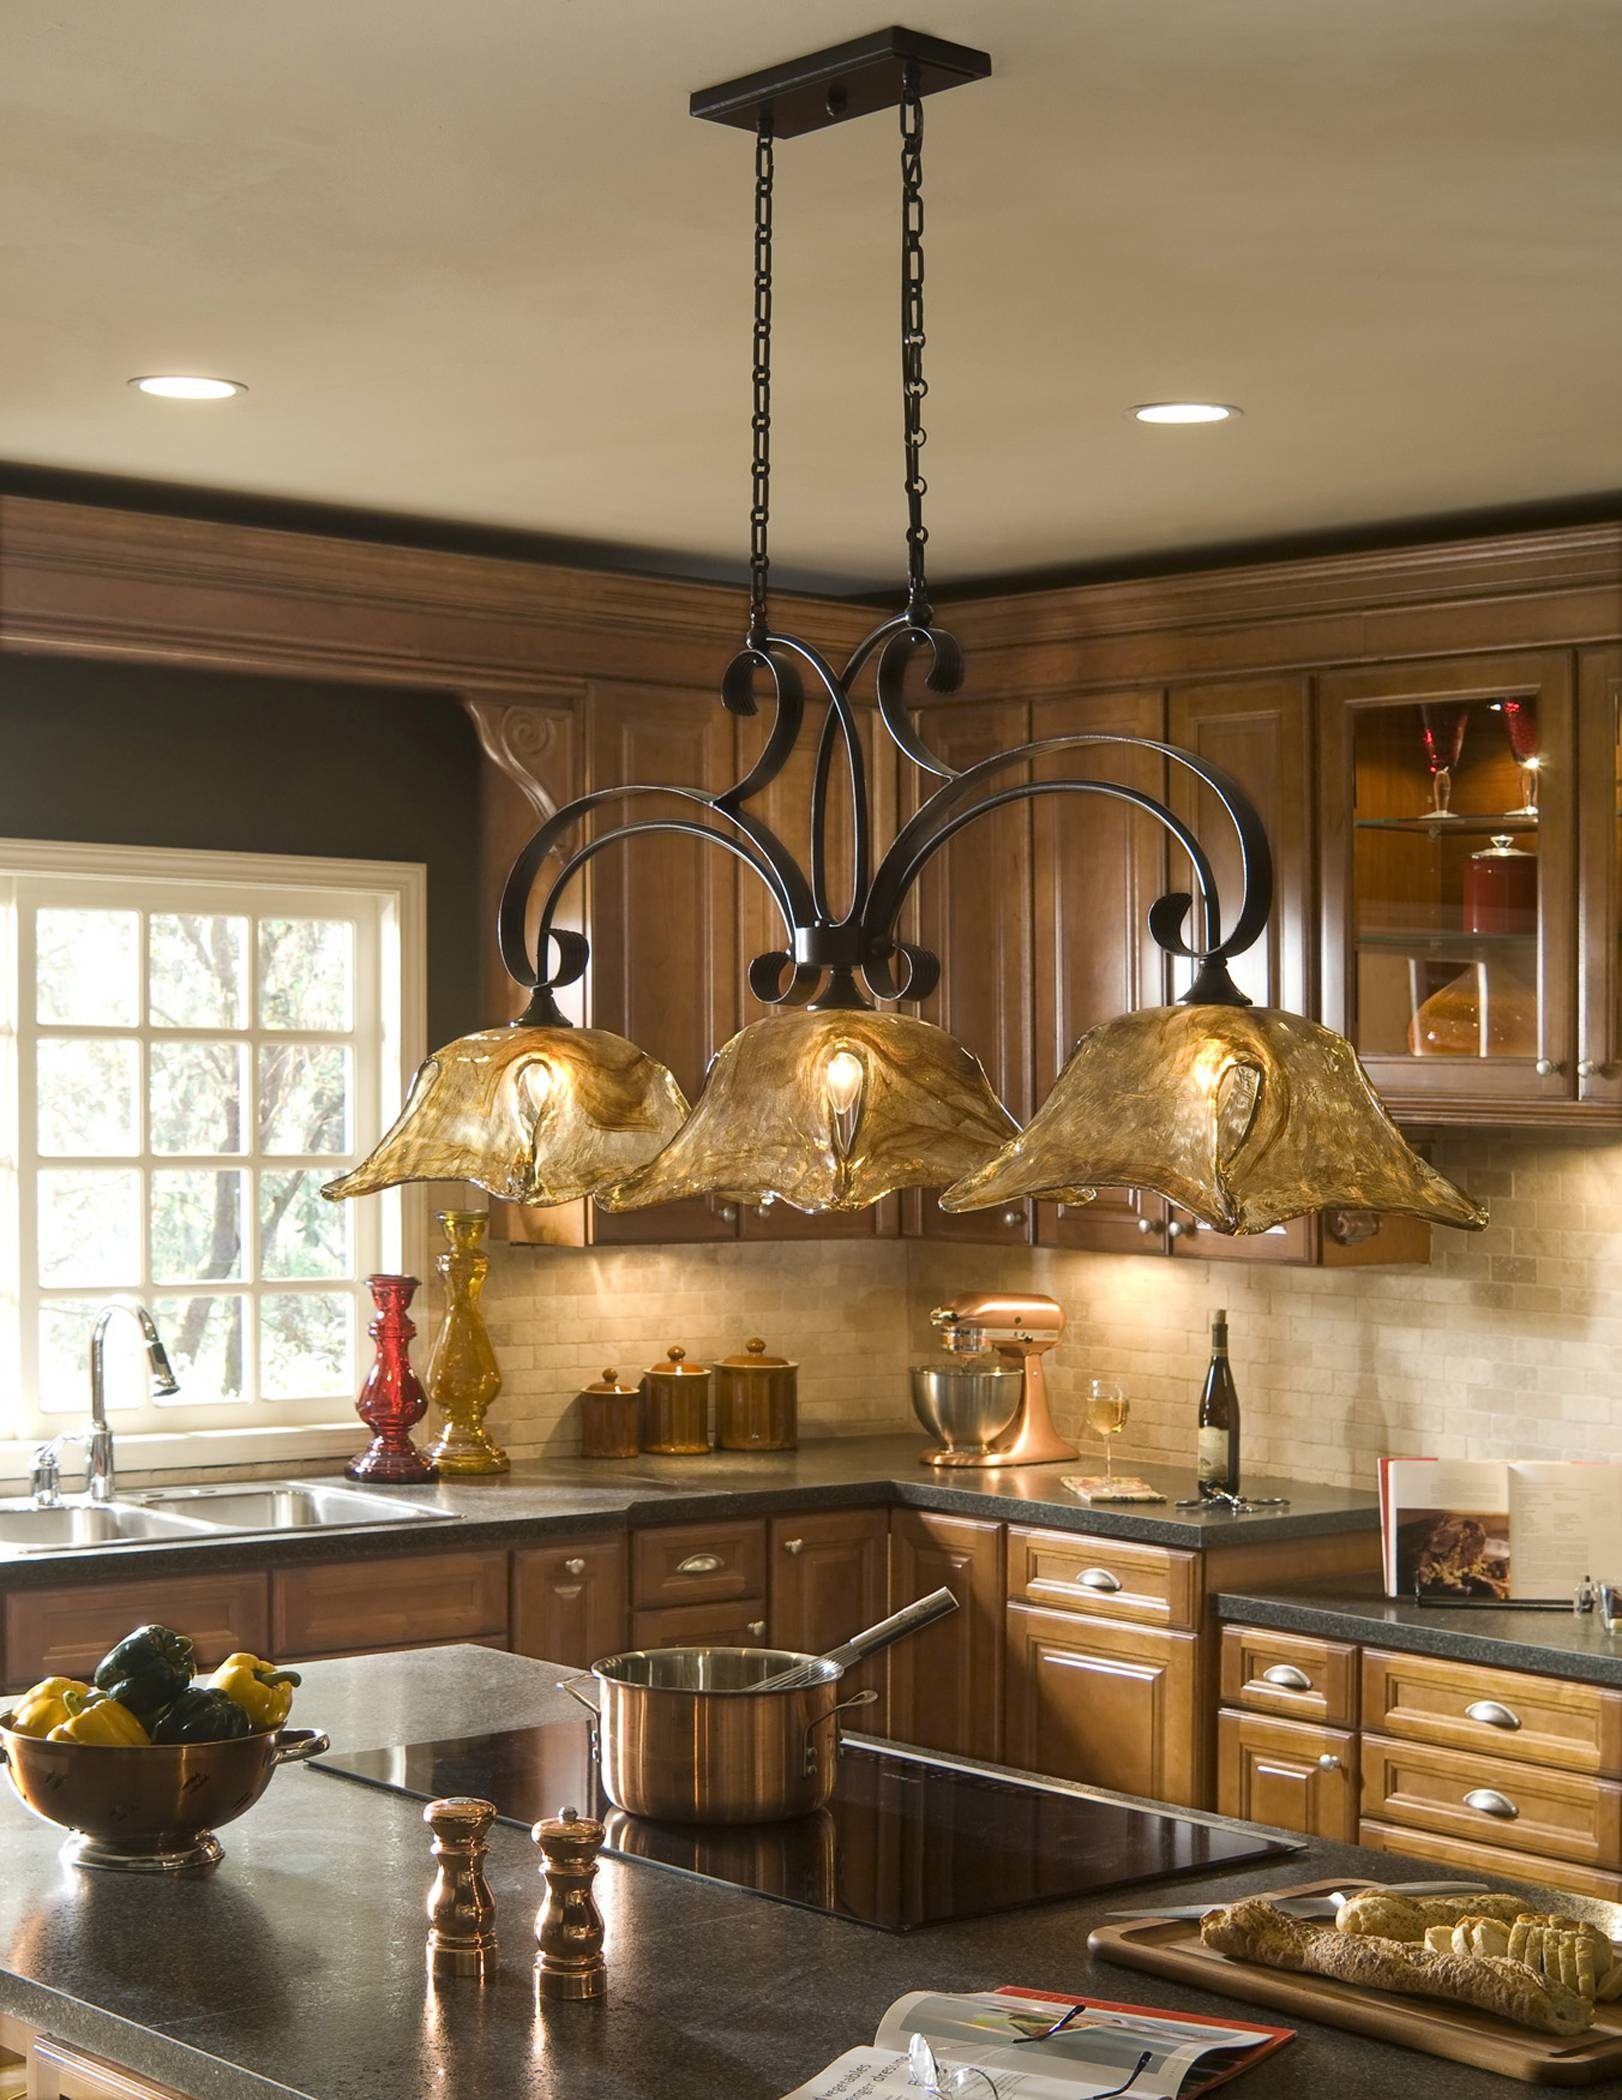 Brilliant Kitchen Chandeliers Lighting Interior Decorating Concept Regarding Lantern Style Pendant Lighting (View 9 of 15)